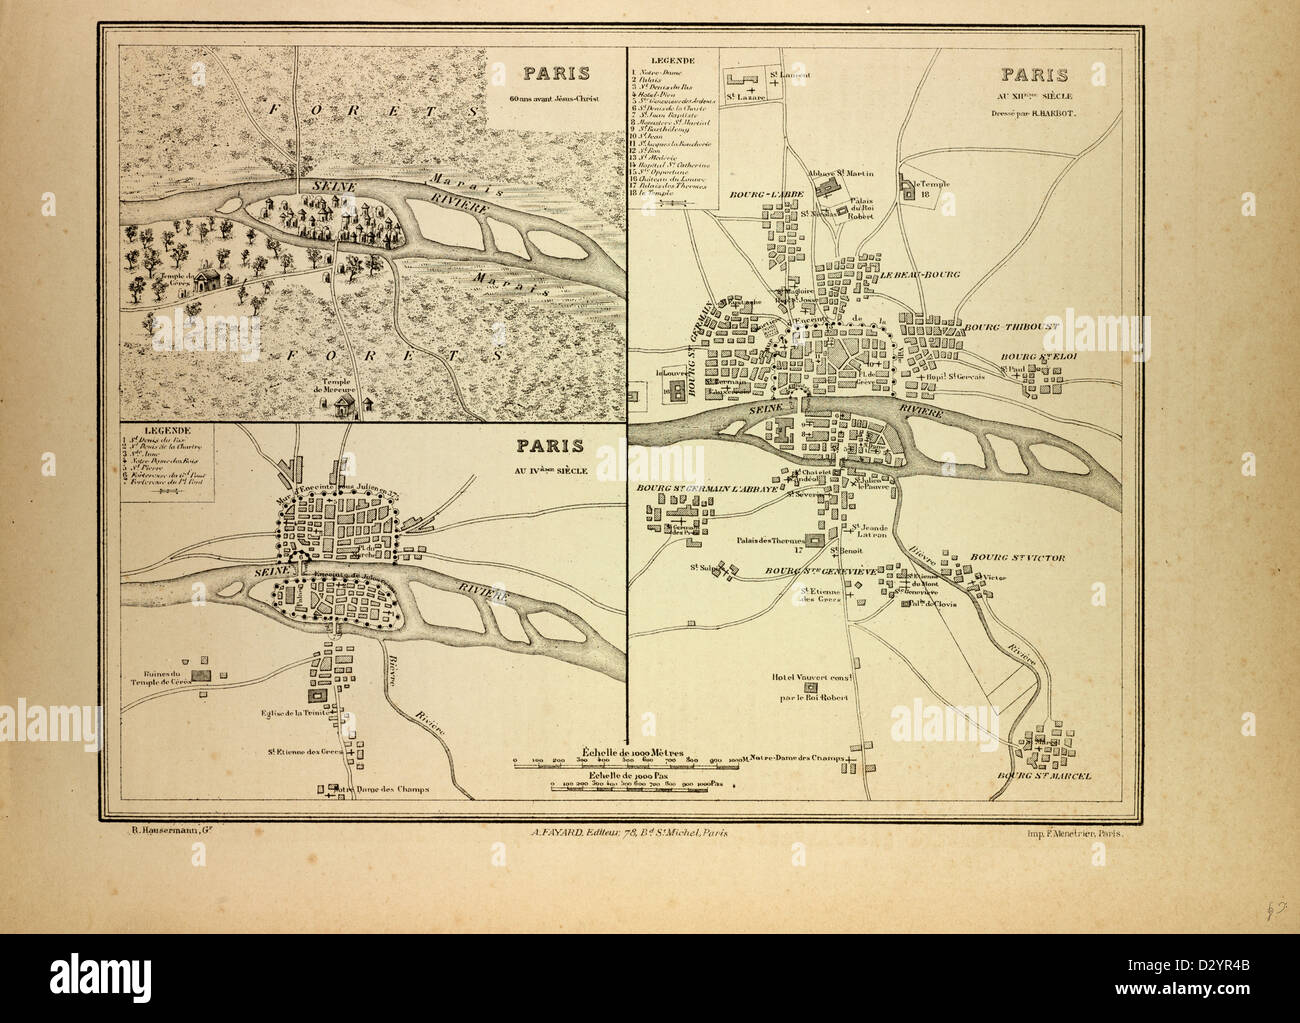 MAP OF PARIS IN 60 B.C. IN THE 4TH CENTURY AND IN THE 12TH CENTURY FRANCE - Stock Image